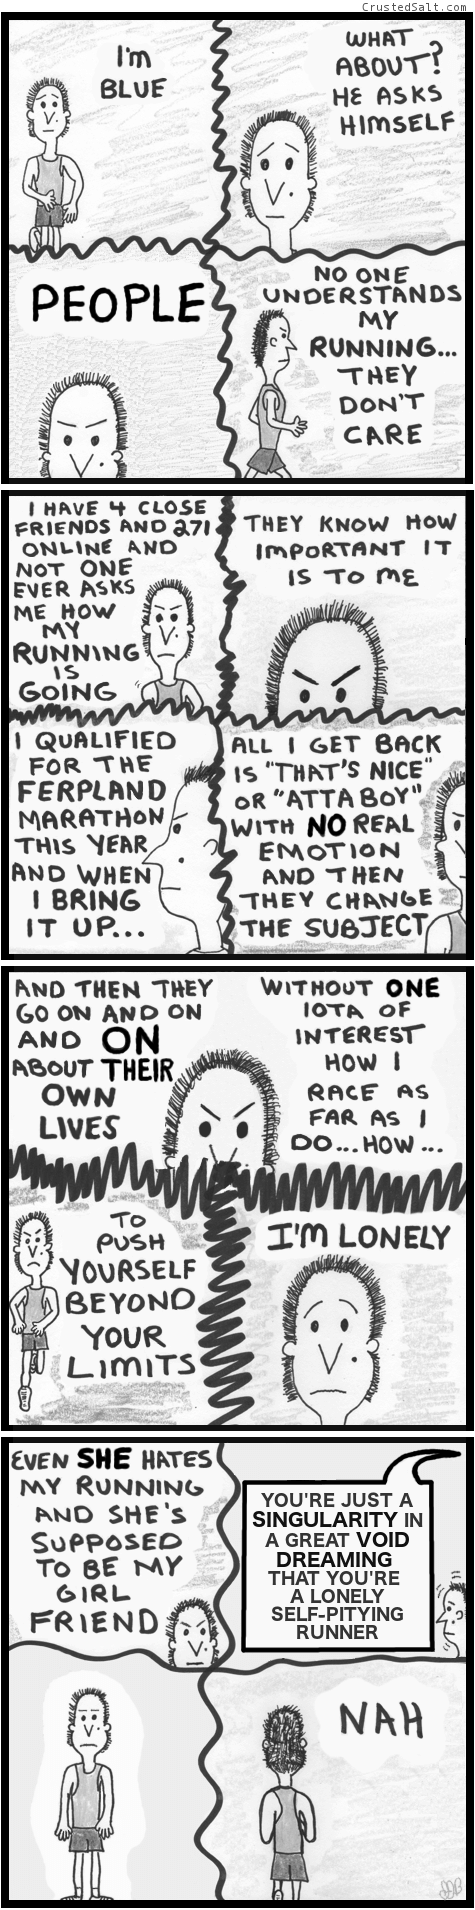 a comic with a man running and lamenting his existence